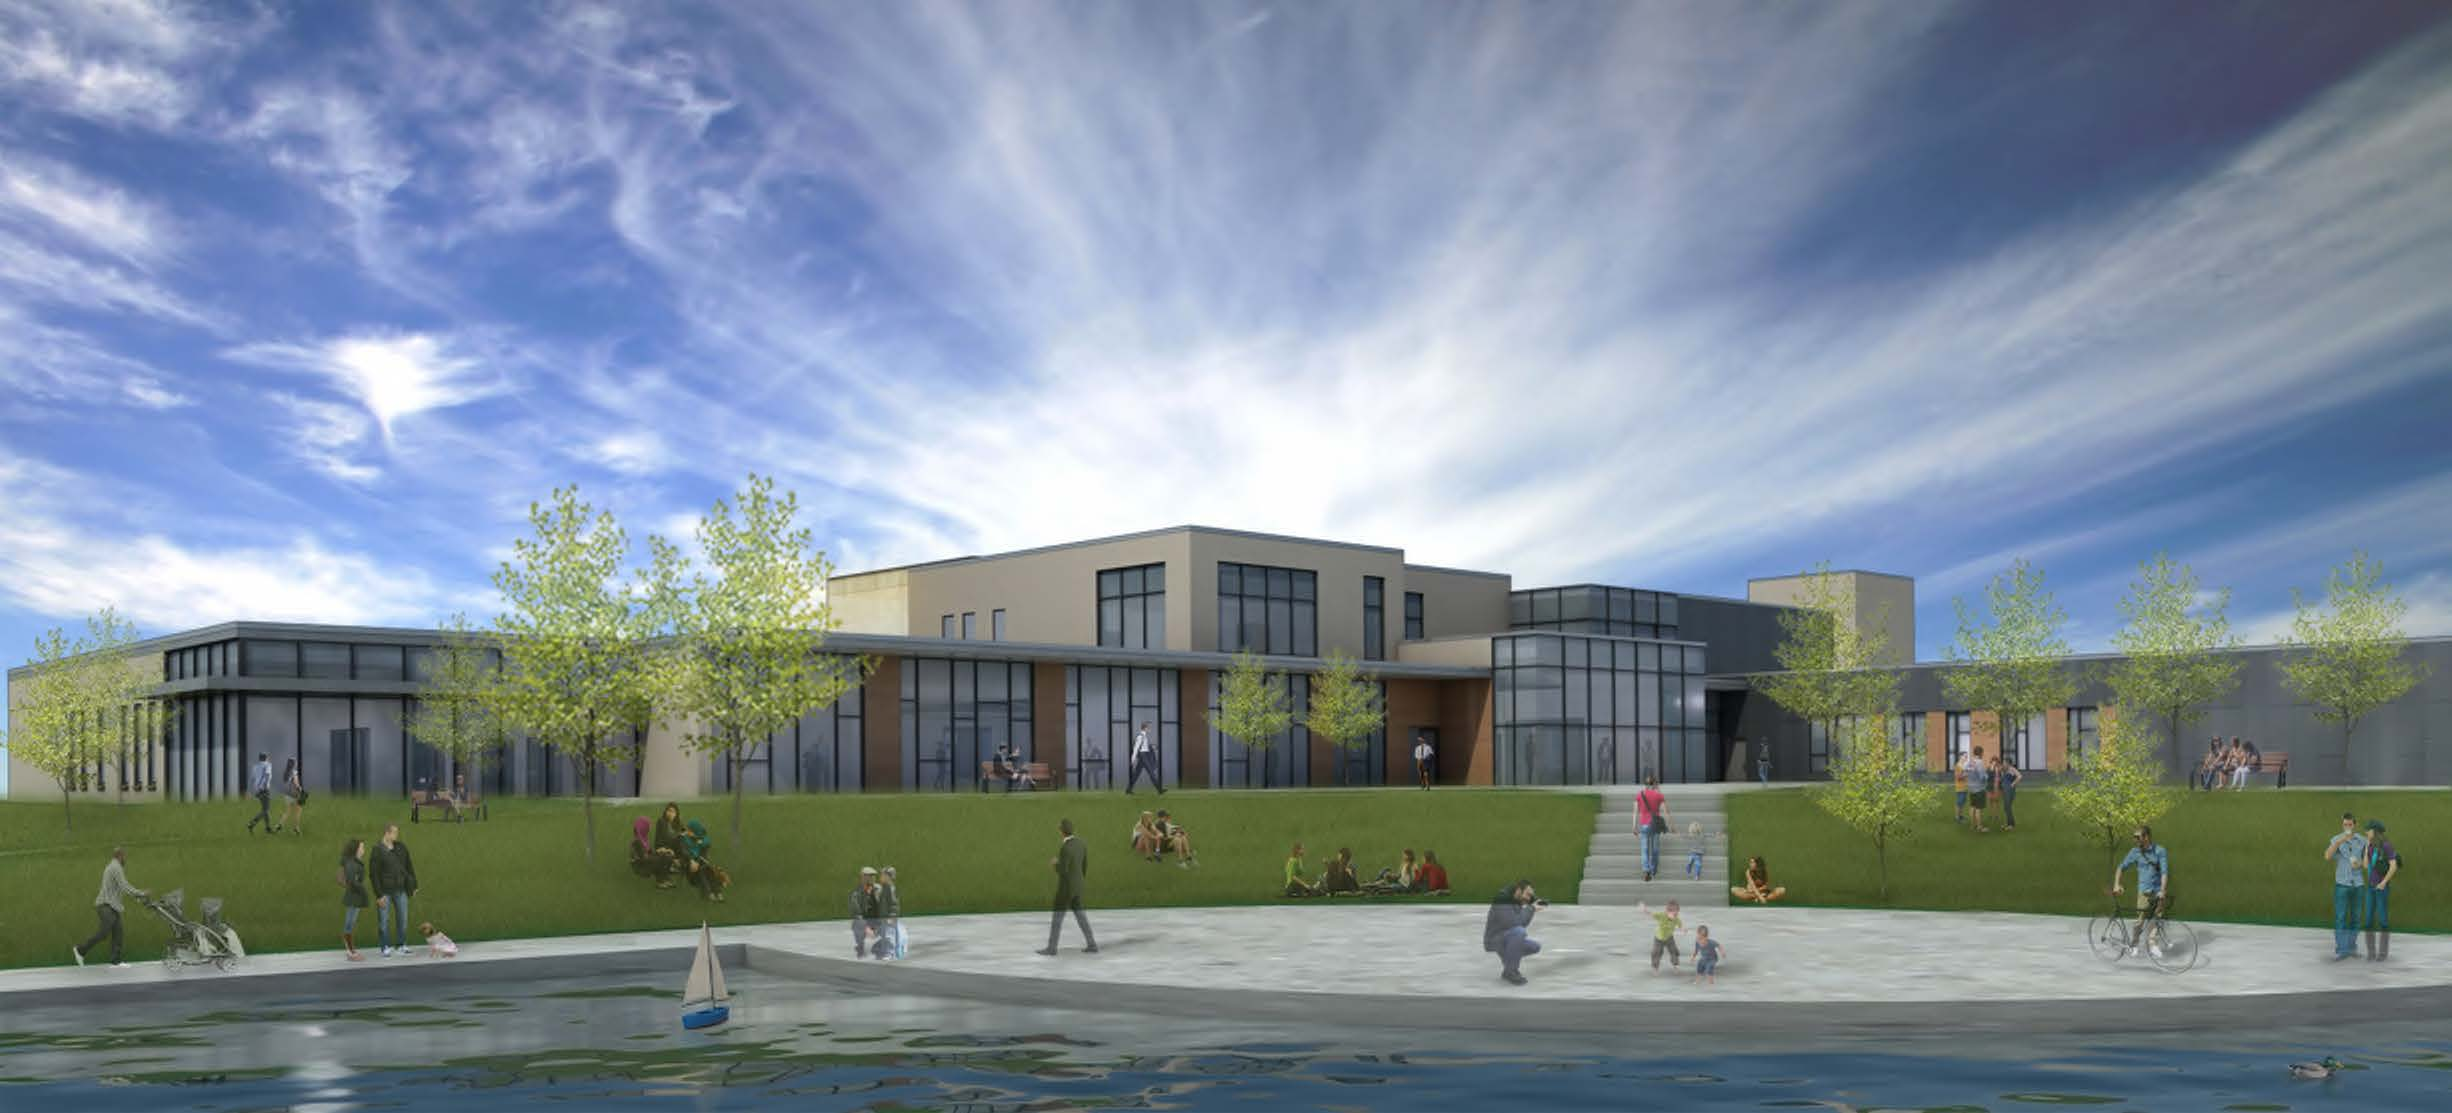 Civic Campus Rendering2